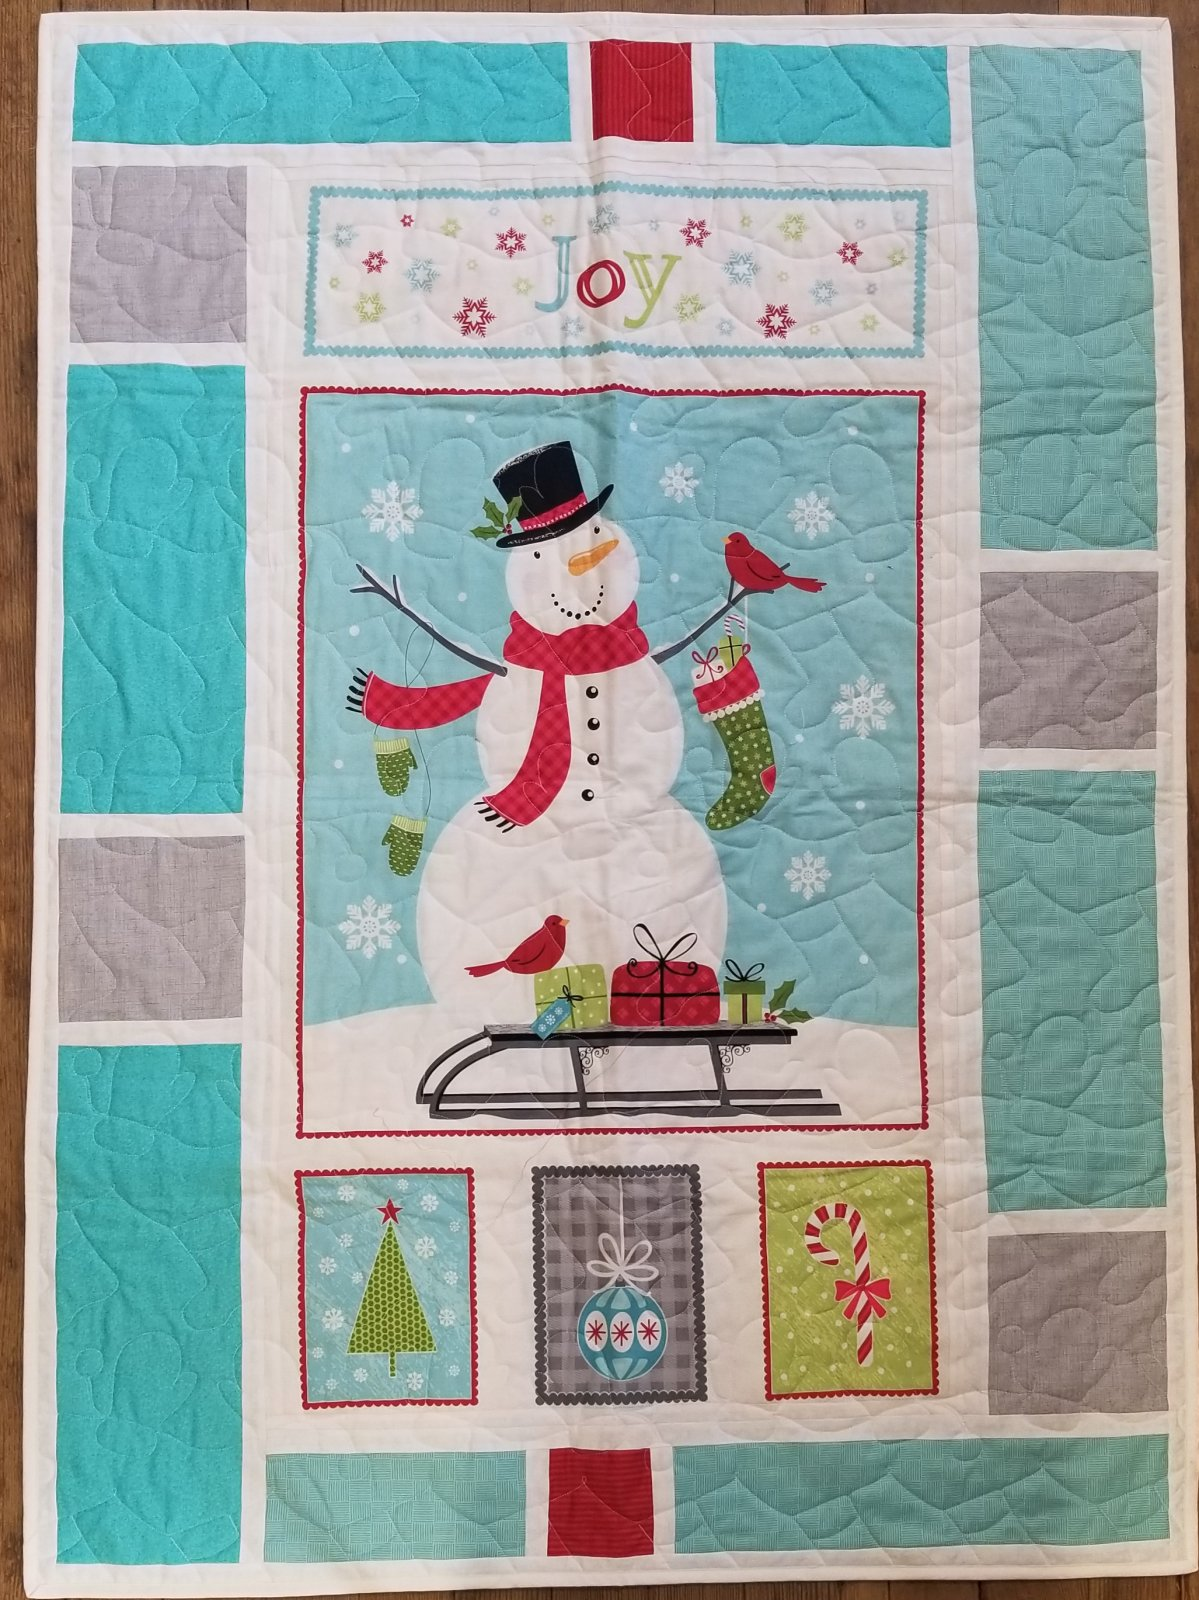 Joy Panel Message Board Quilt Kit